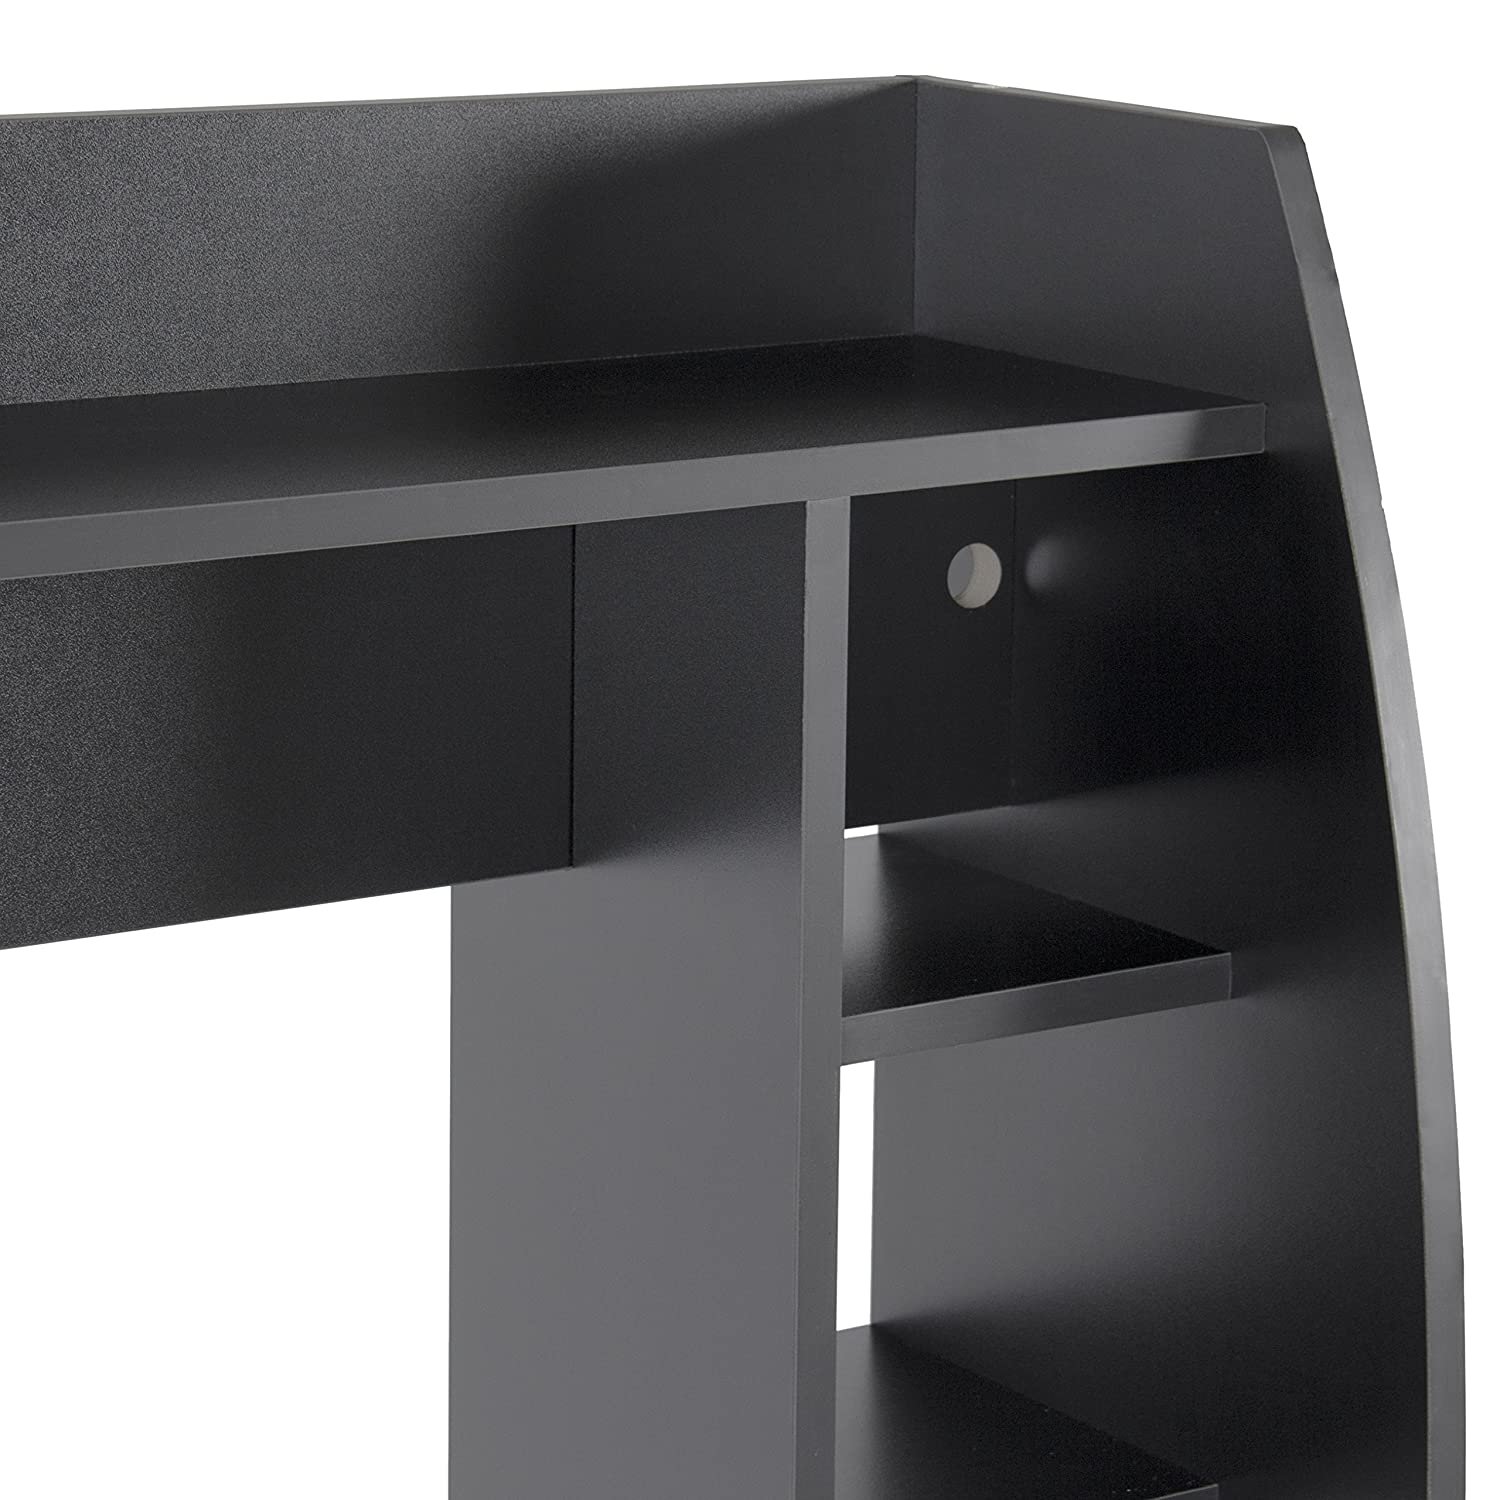 Amazon.com: Best Choice Products Wall Mount Floating Computer Desk With  Storage Shelves Home Work Station- Black: Home & Kitchen